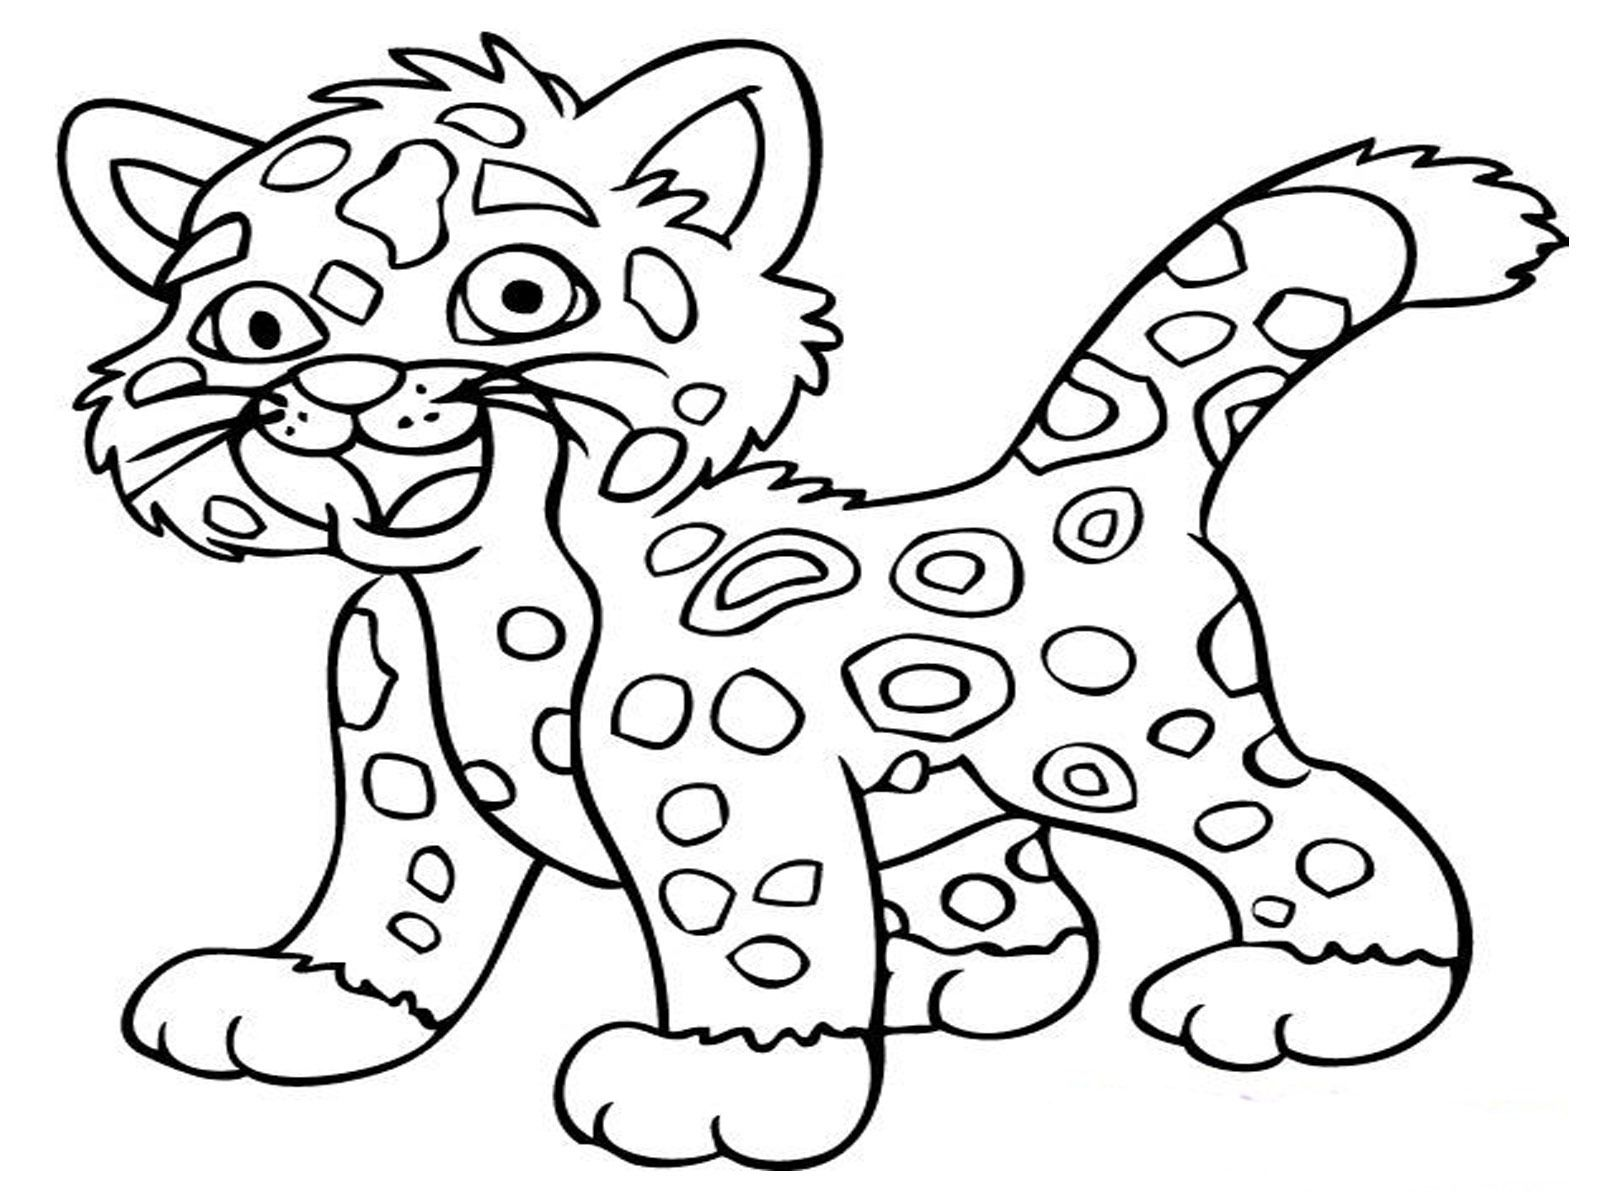 Colouring in animal pages - Coloring Pages Of Cute Animals 17 Pictures Colorine Net 21150